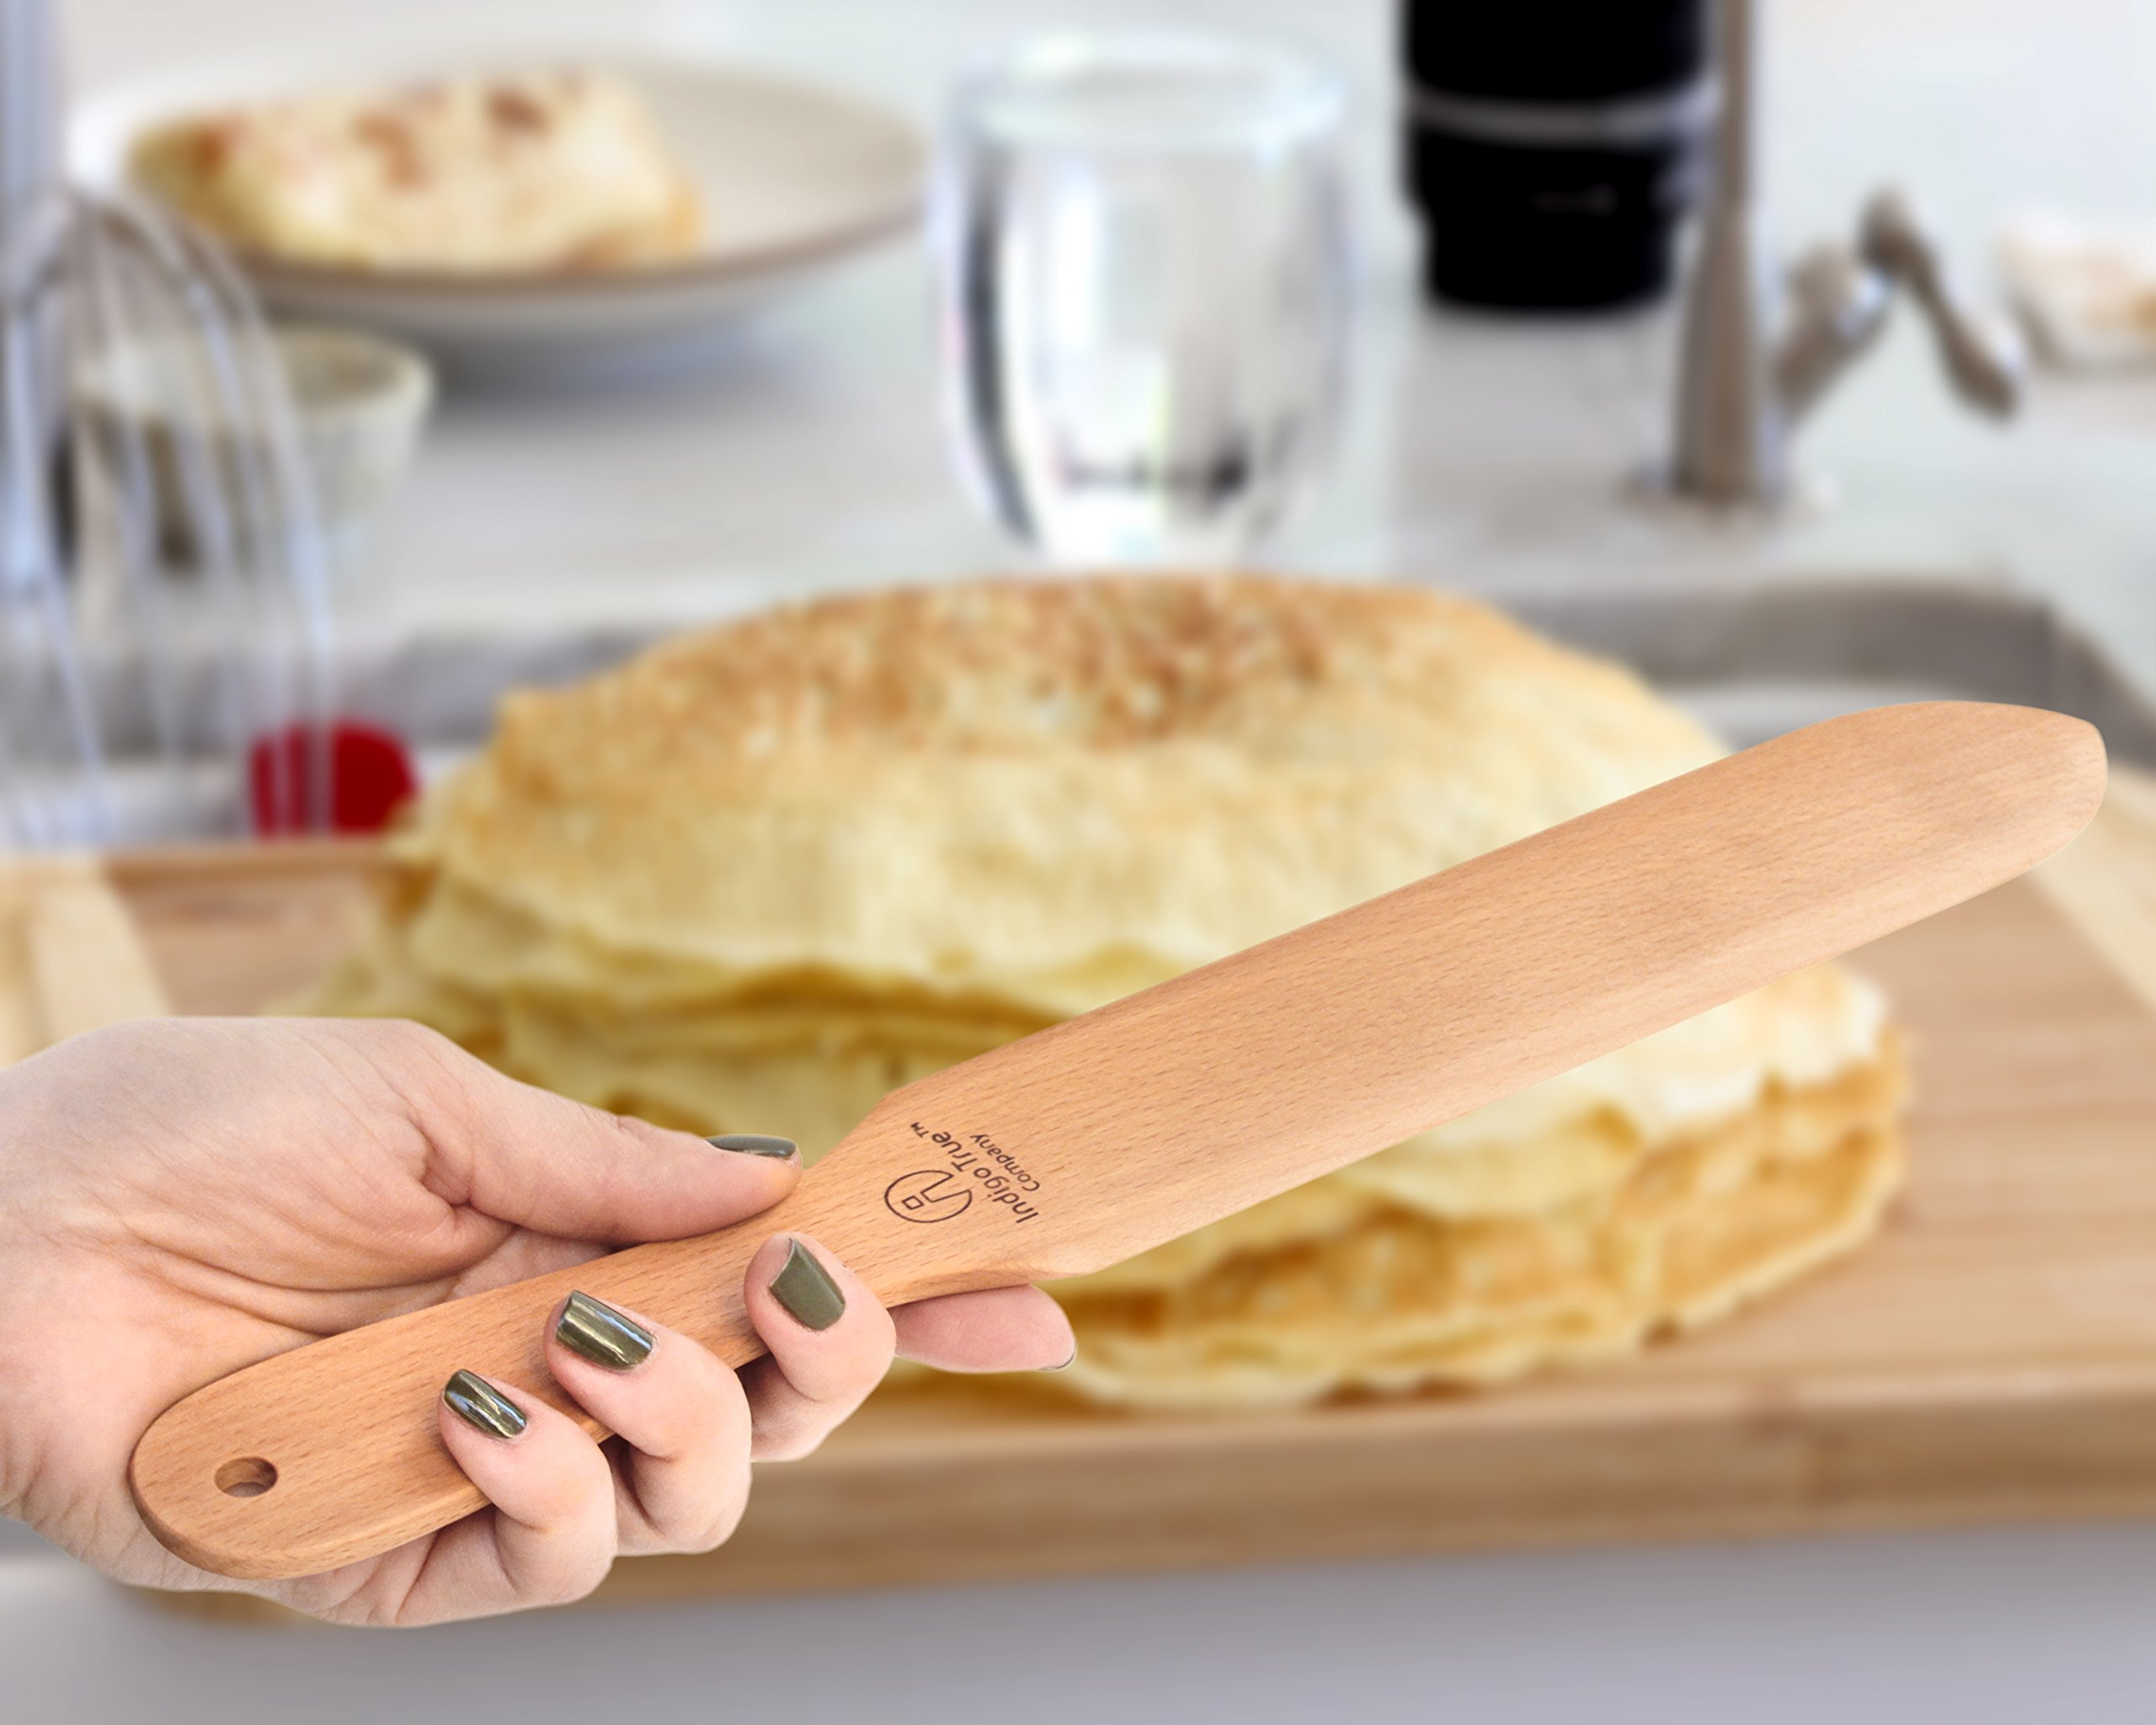 "The ORIGINAL Crepe Spreader and Spatula Kit - 2 Piece Set (4"" Spreader and 14"" Spatula) Convenient Size to Fit Small Crepe Pan Maker 